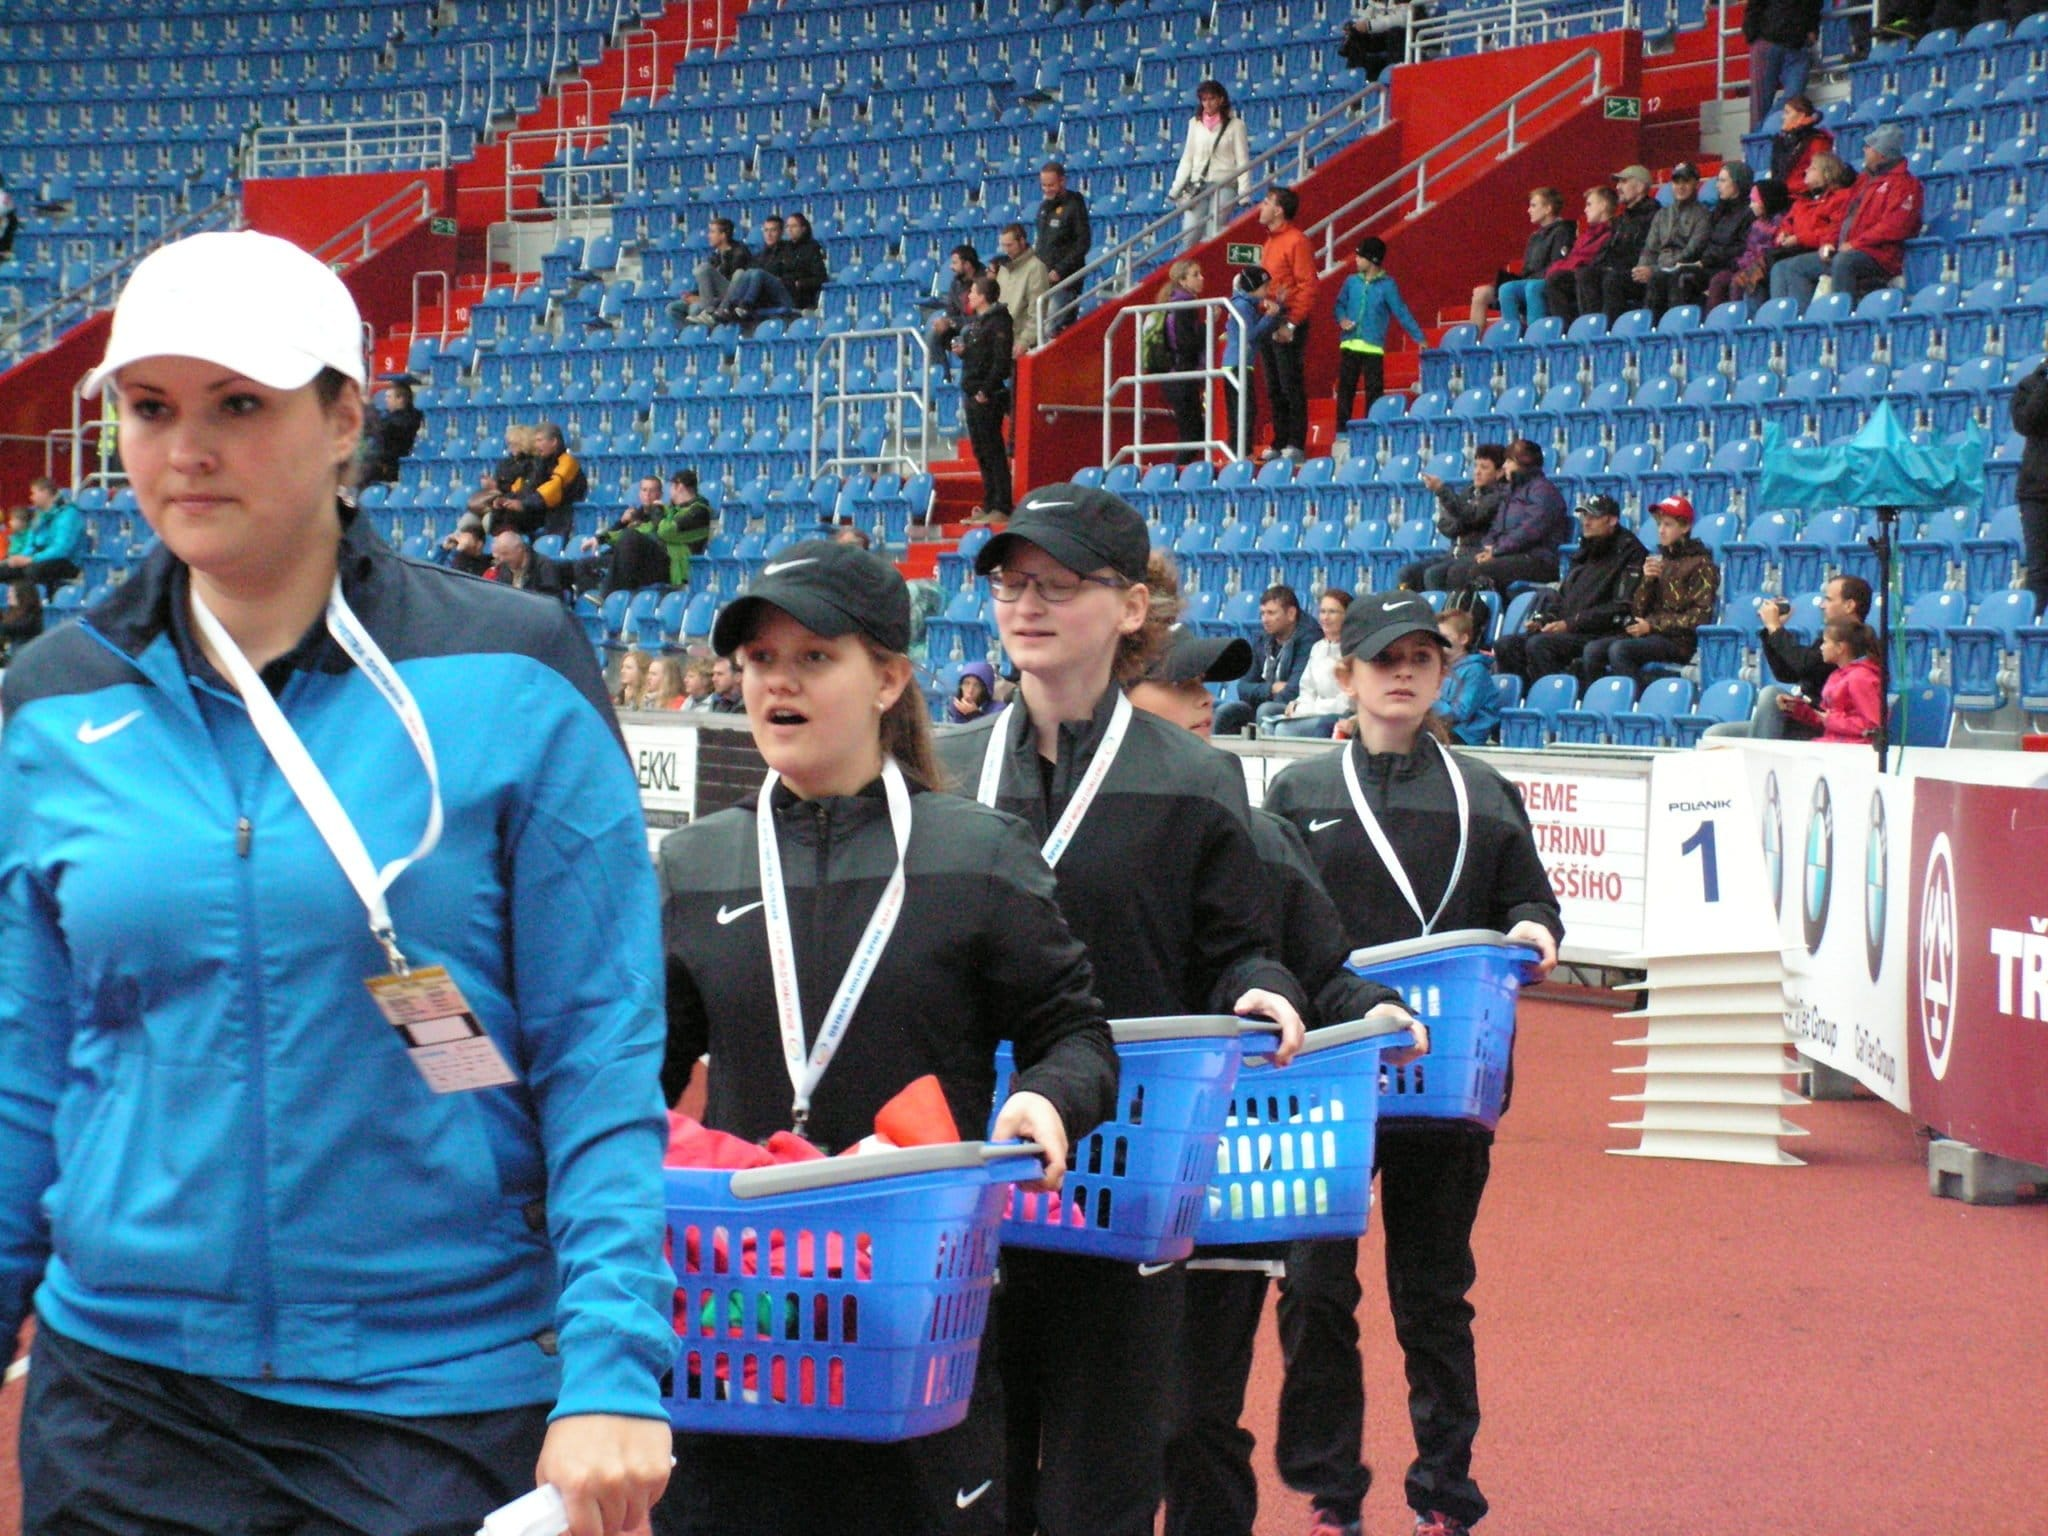 03-The efficiency of the track league is seen in empowered and dynamic volunteers of the local Athletics clubs in Ostrava, Czech Republic.